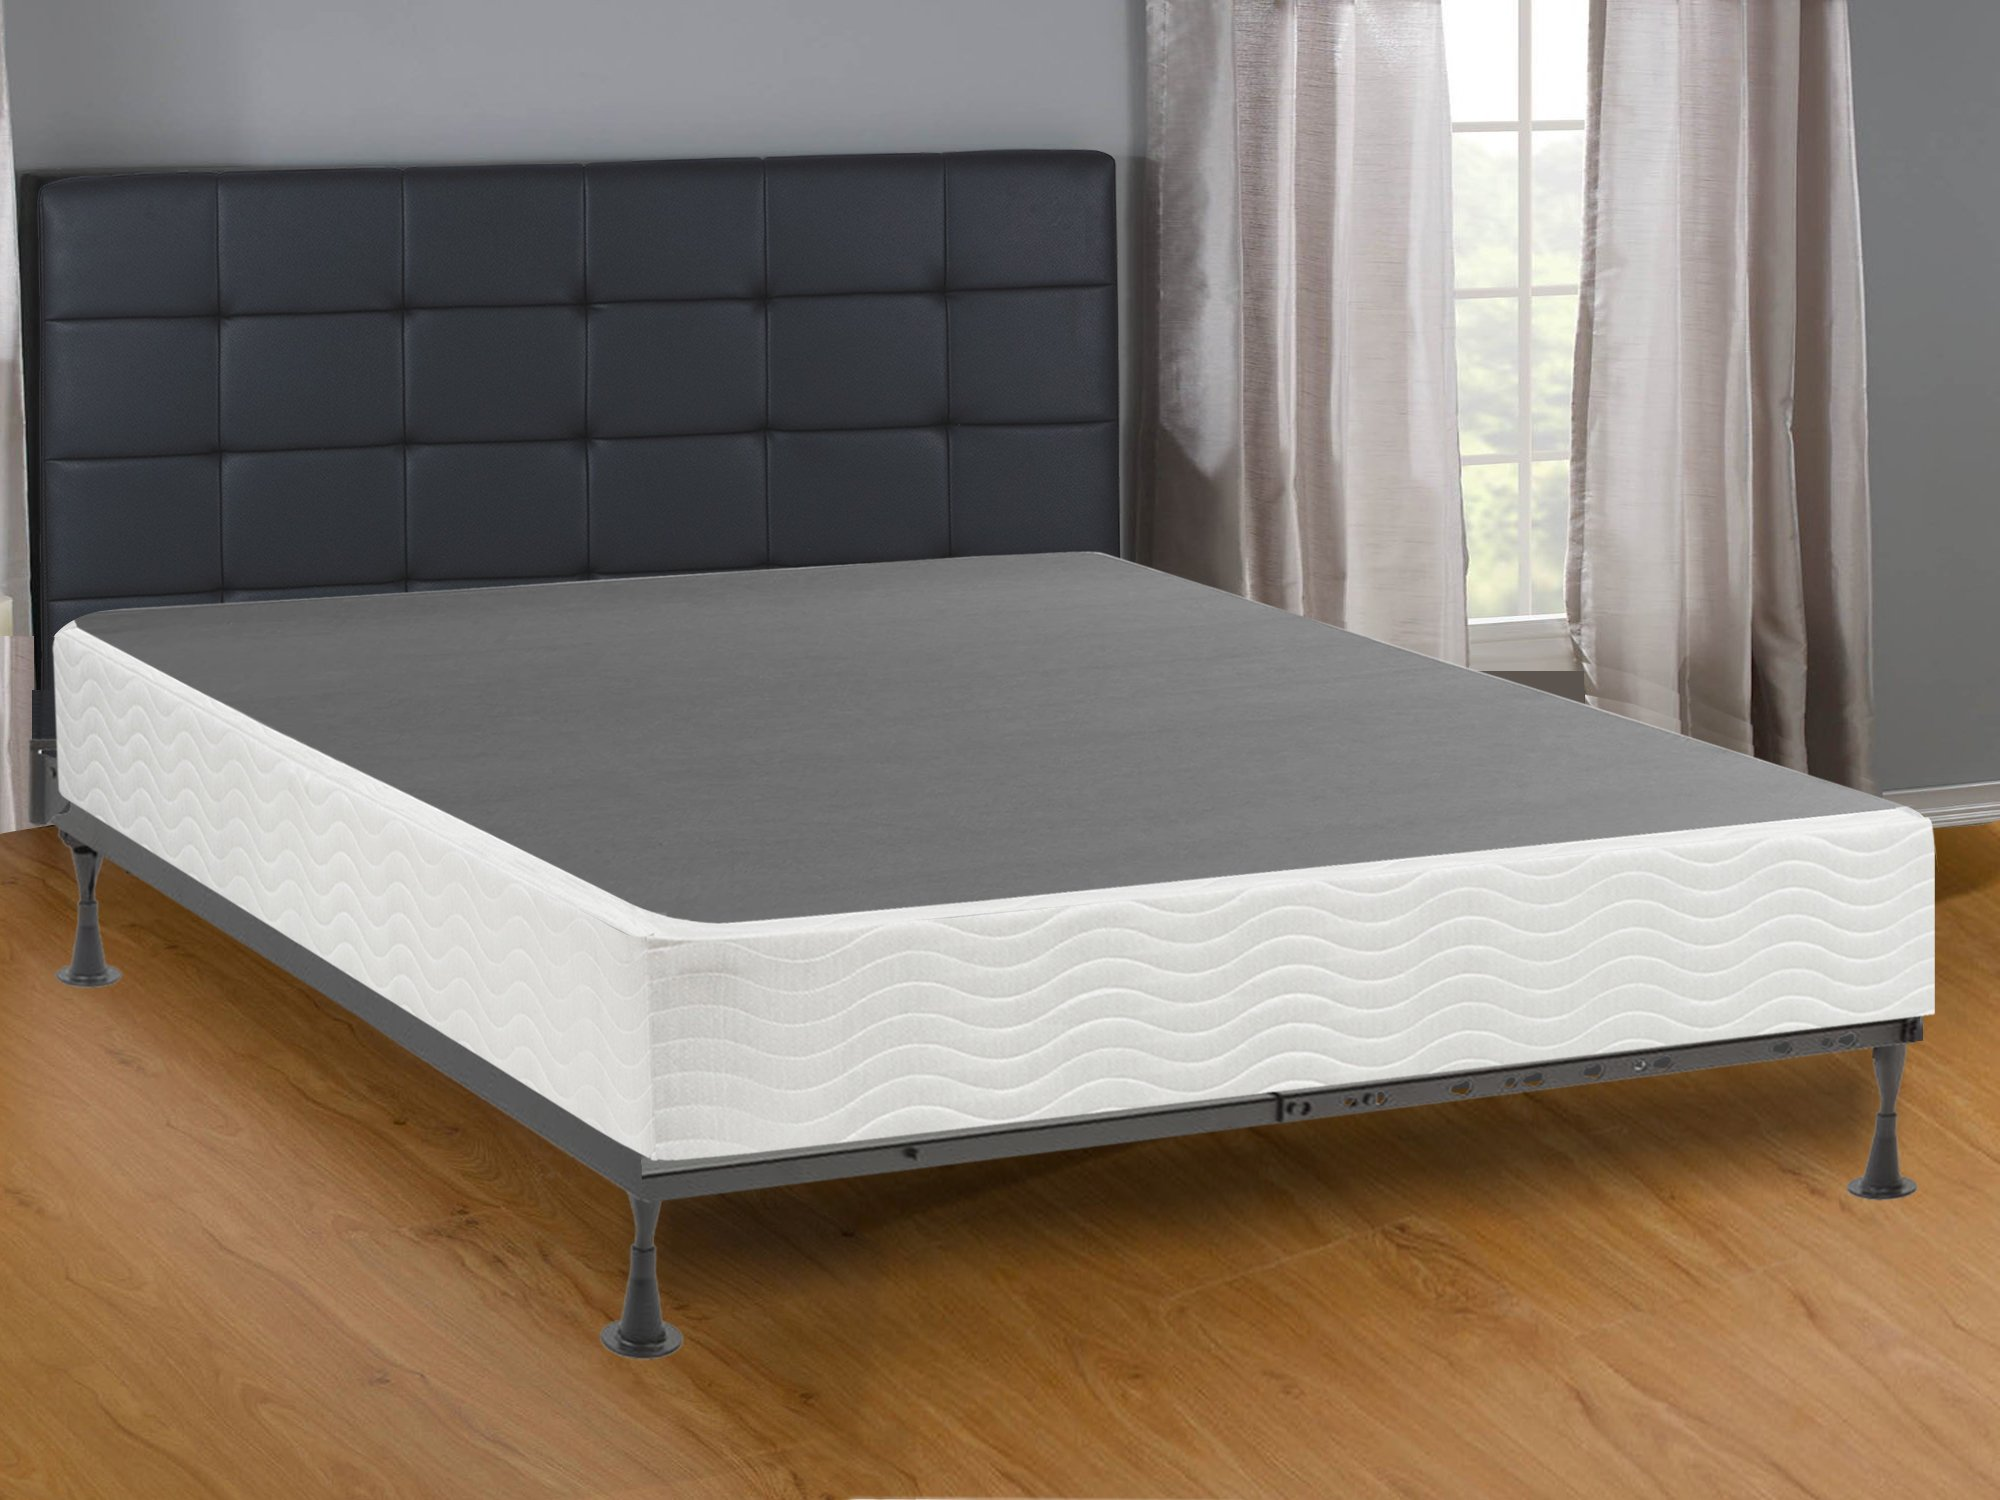 Mattress Comfort Assembly Metal Box Spring/Foundation, Full Size by Mattress Comfort